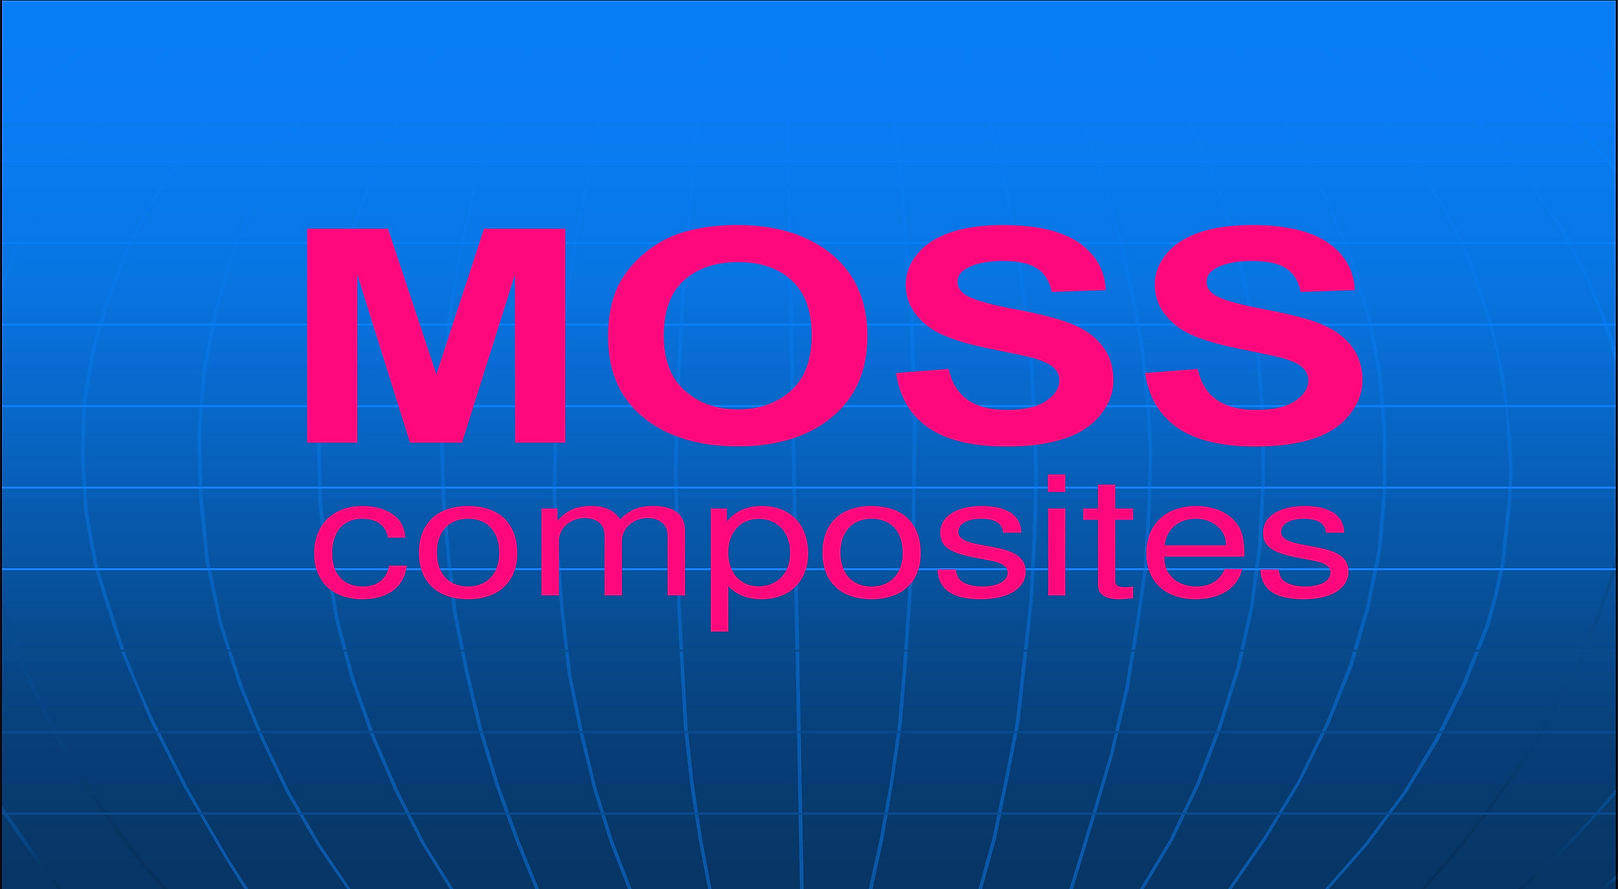 MOSS composites logo .png